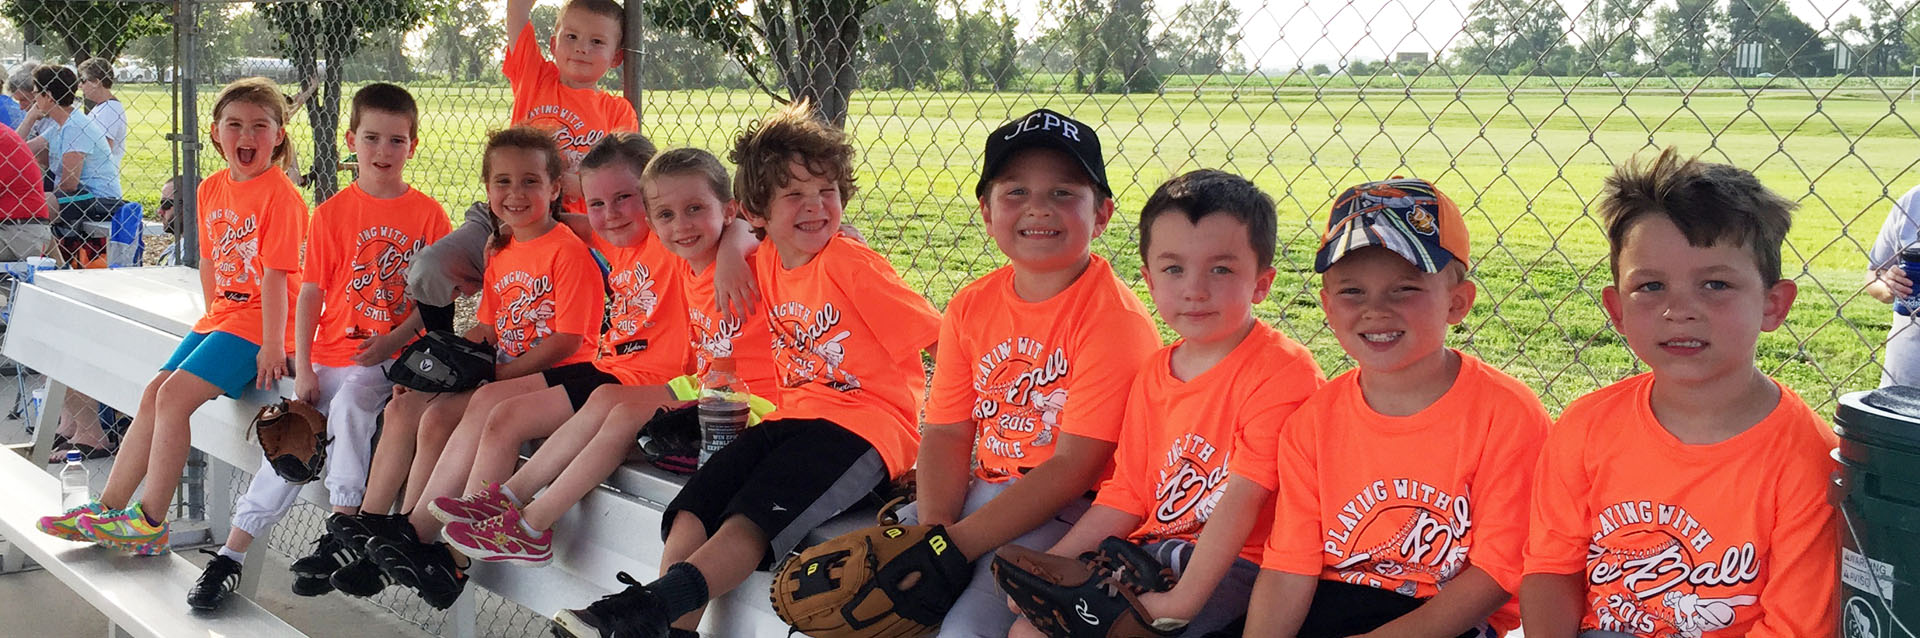 youth teeball